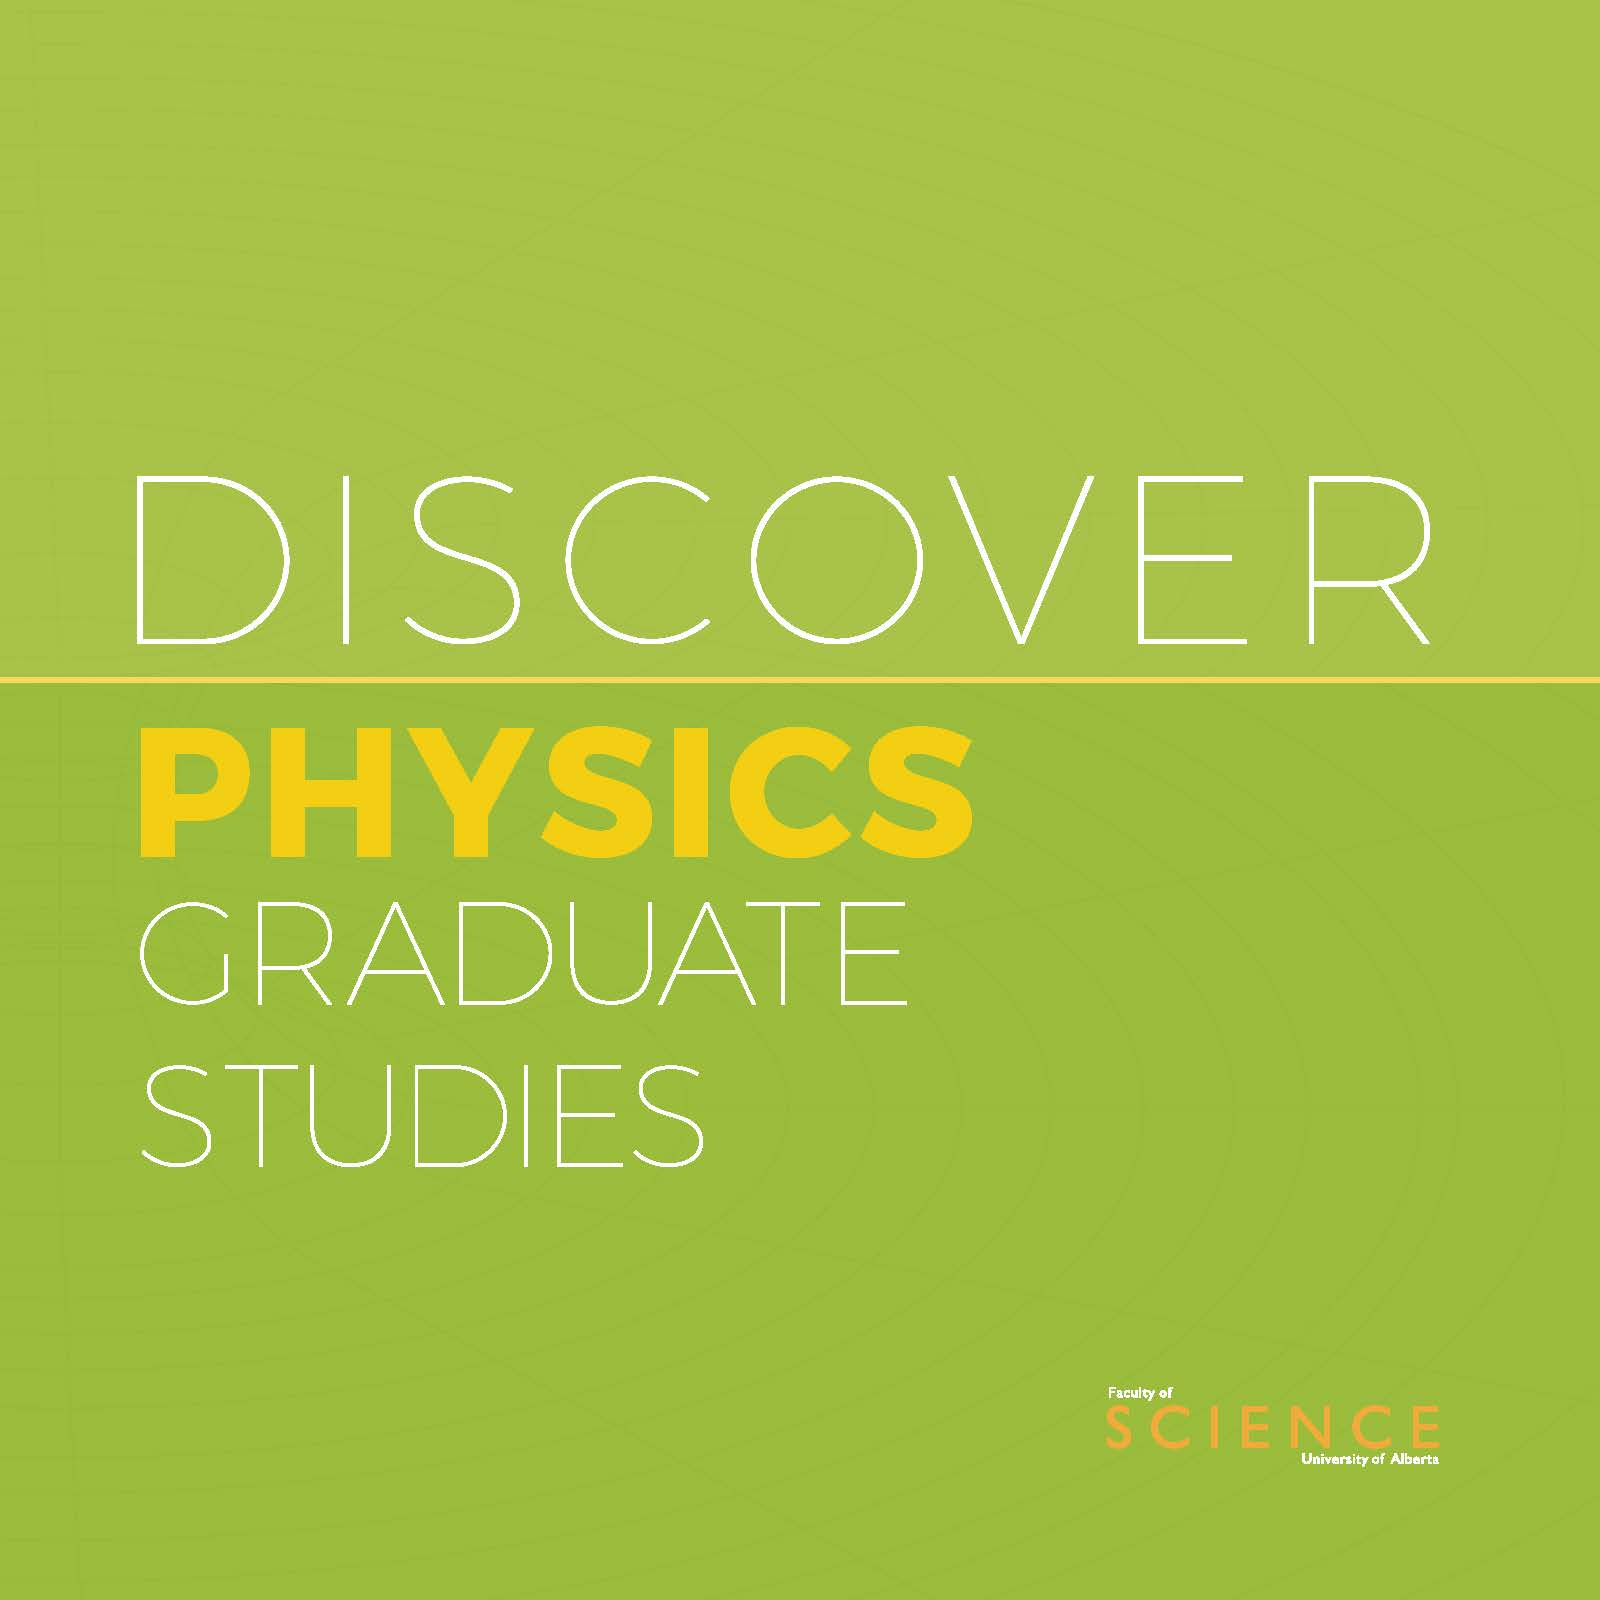 Physics Graduate Studies